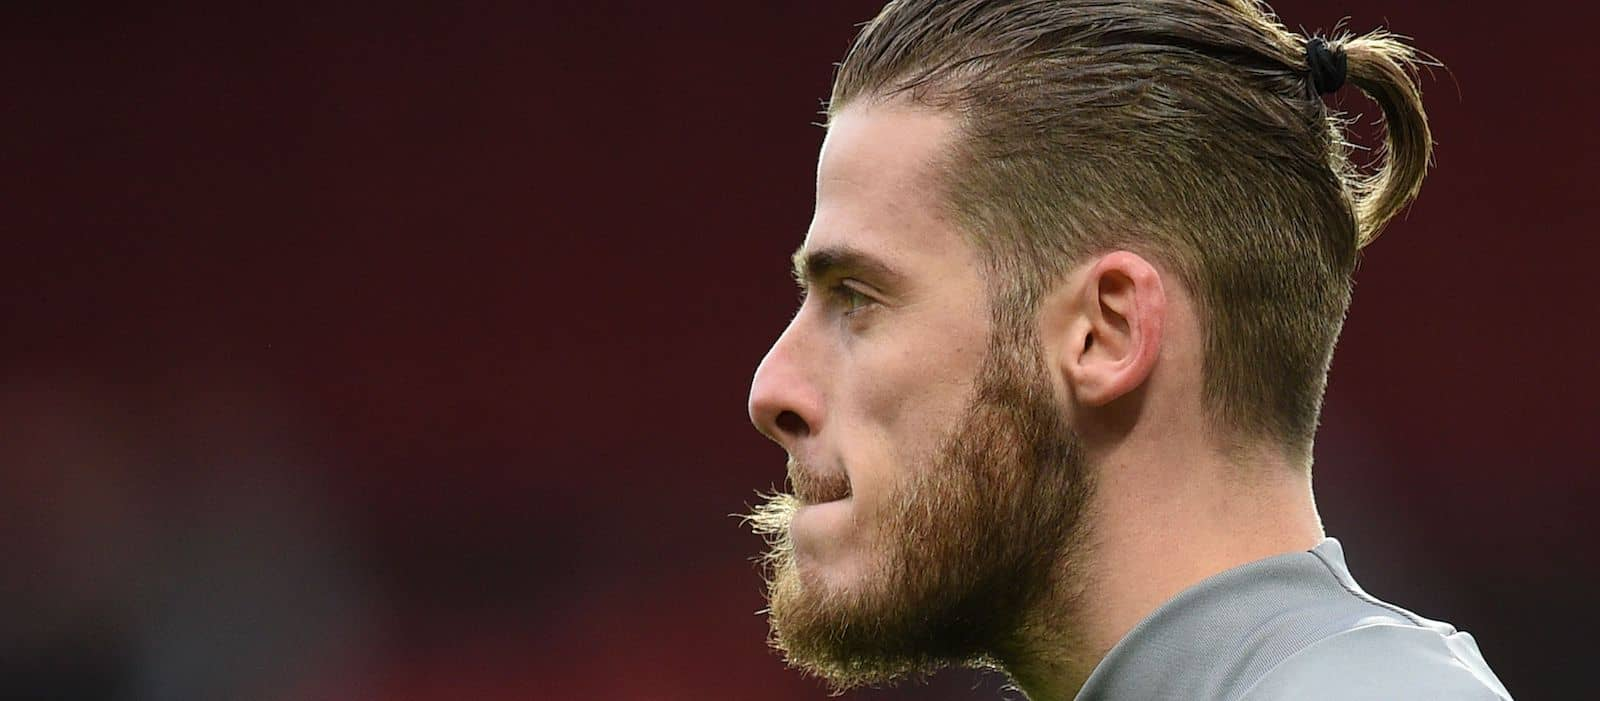 David de Gea celebrates while Man United fans are crying